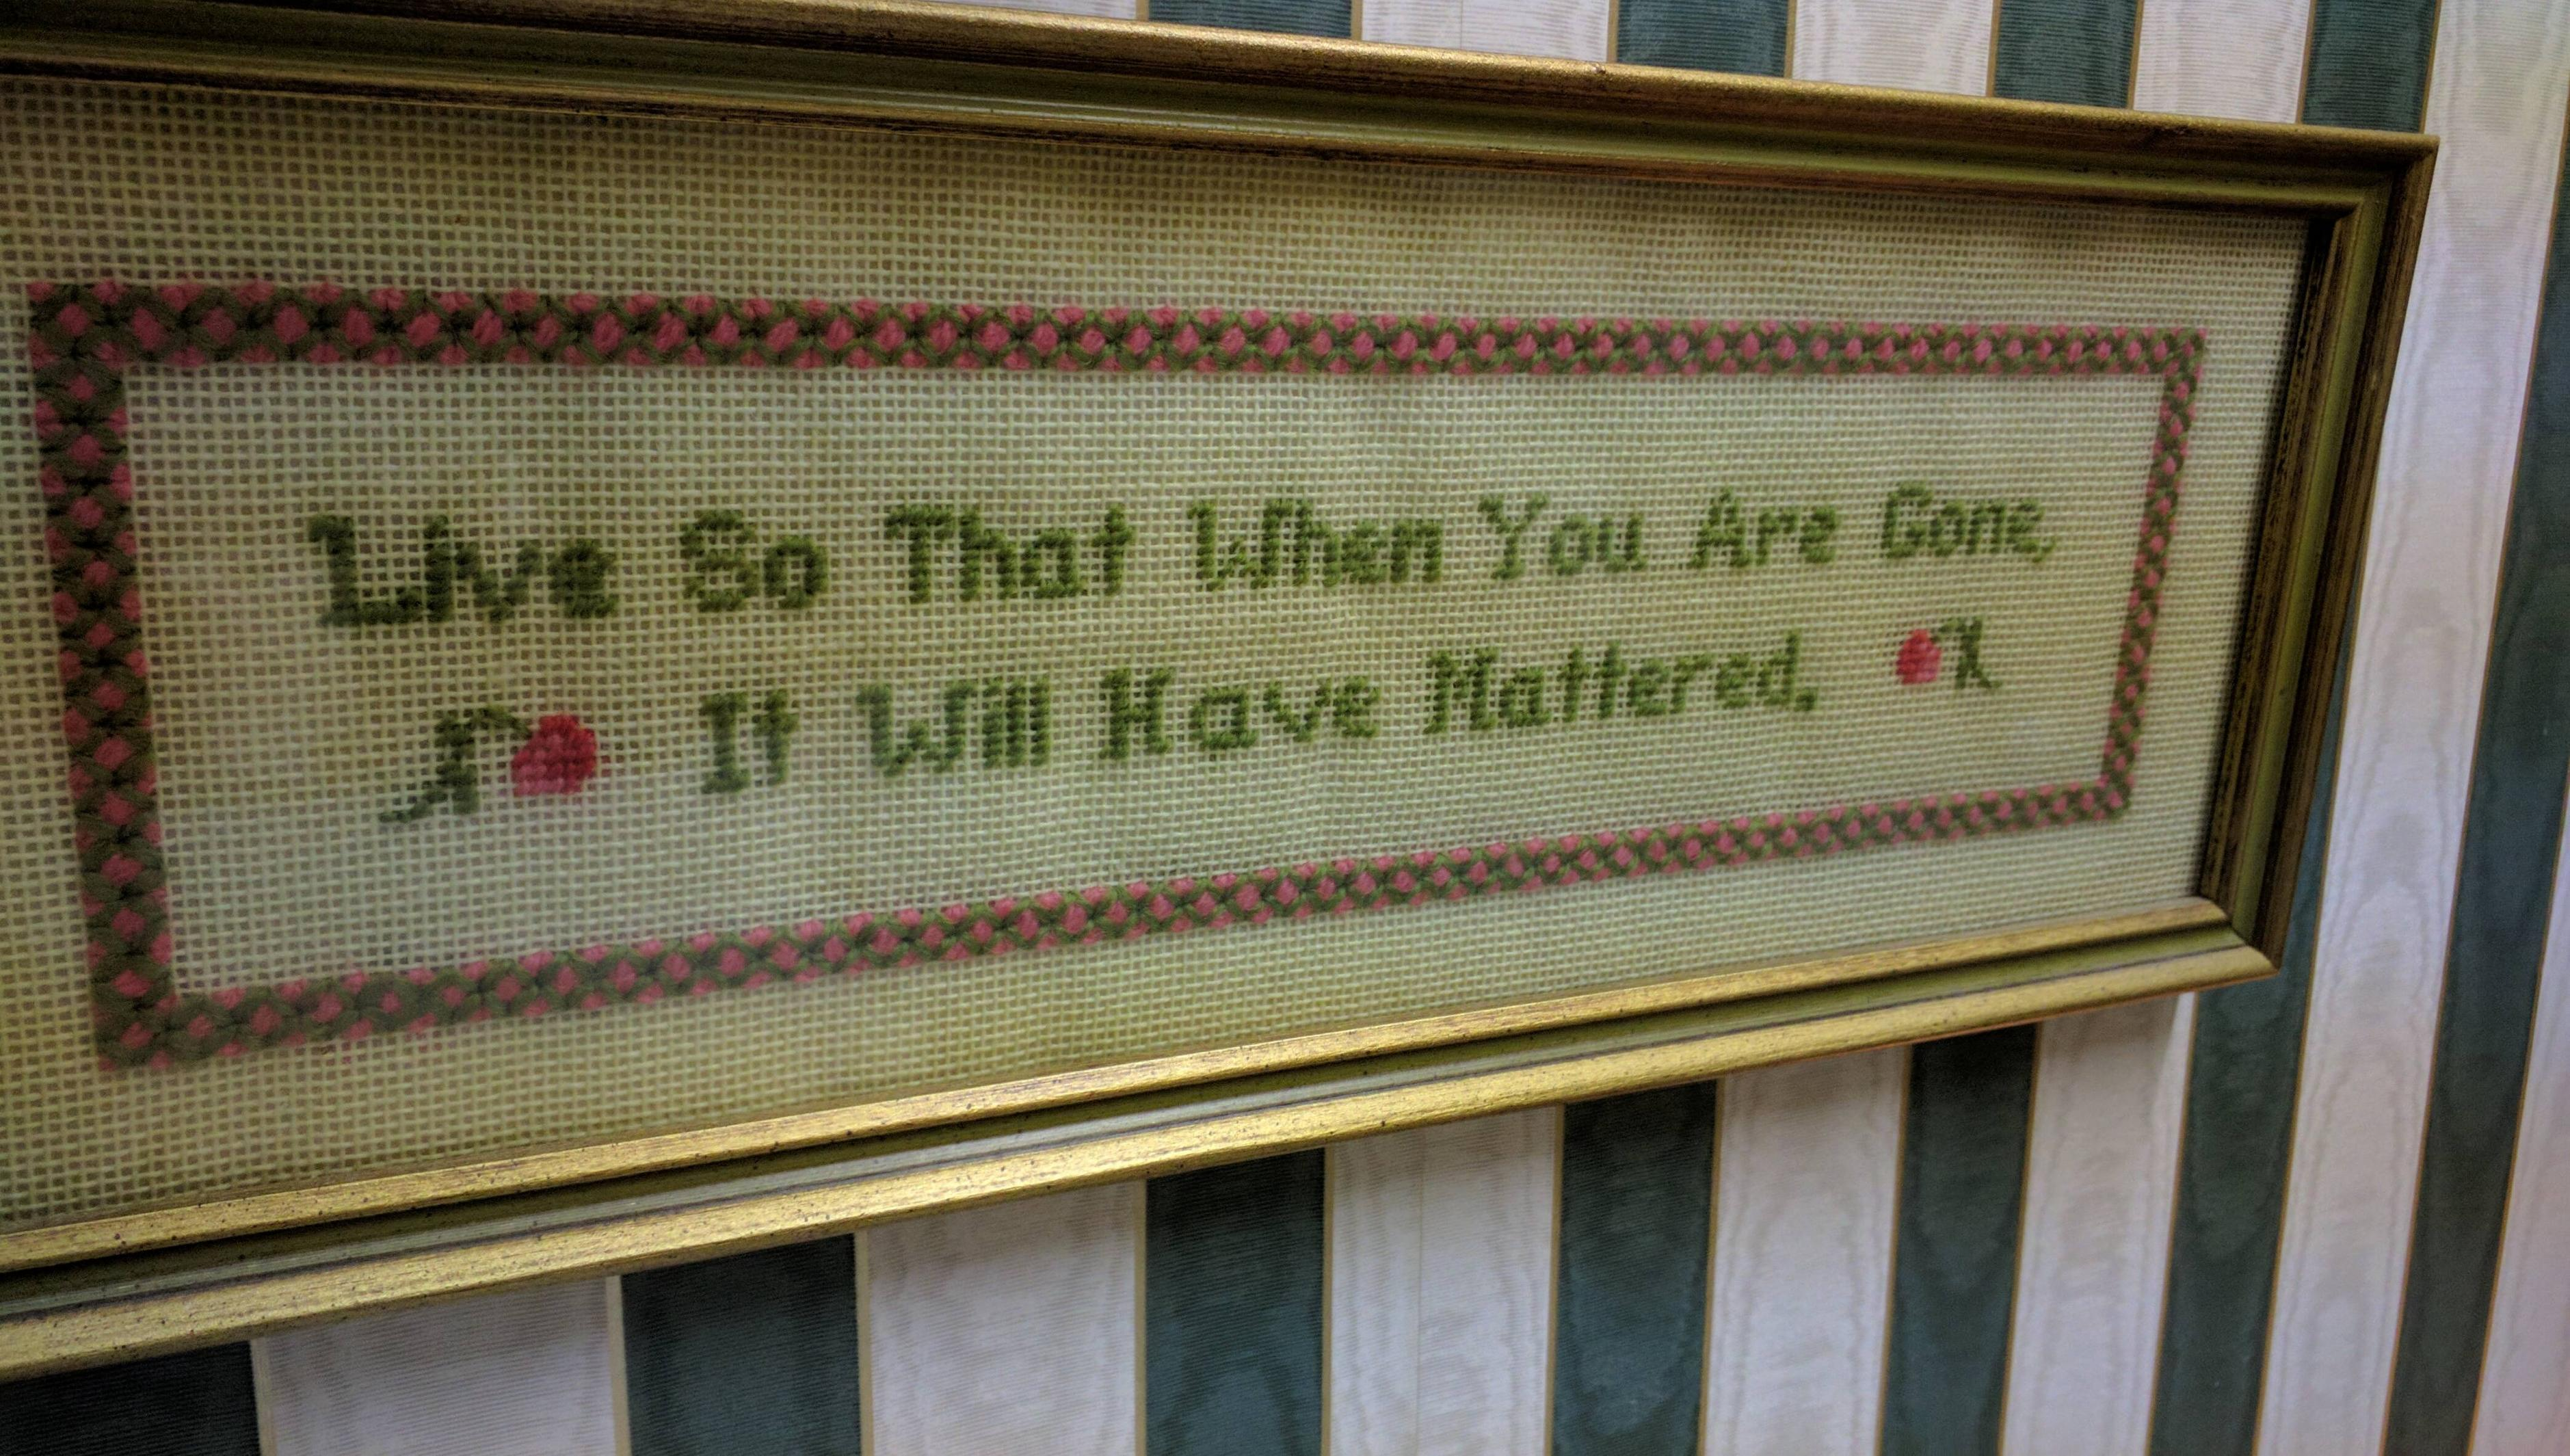 [Image] Live so that when you are gone it will have mattered